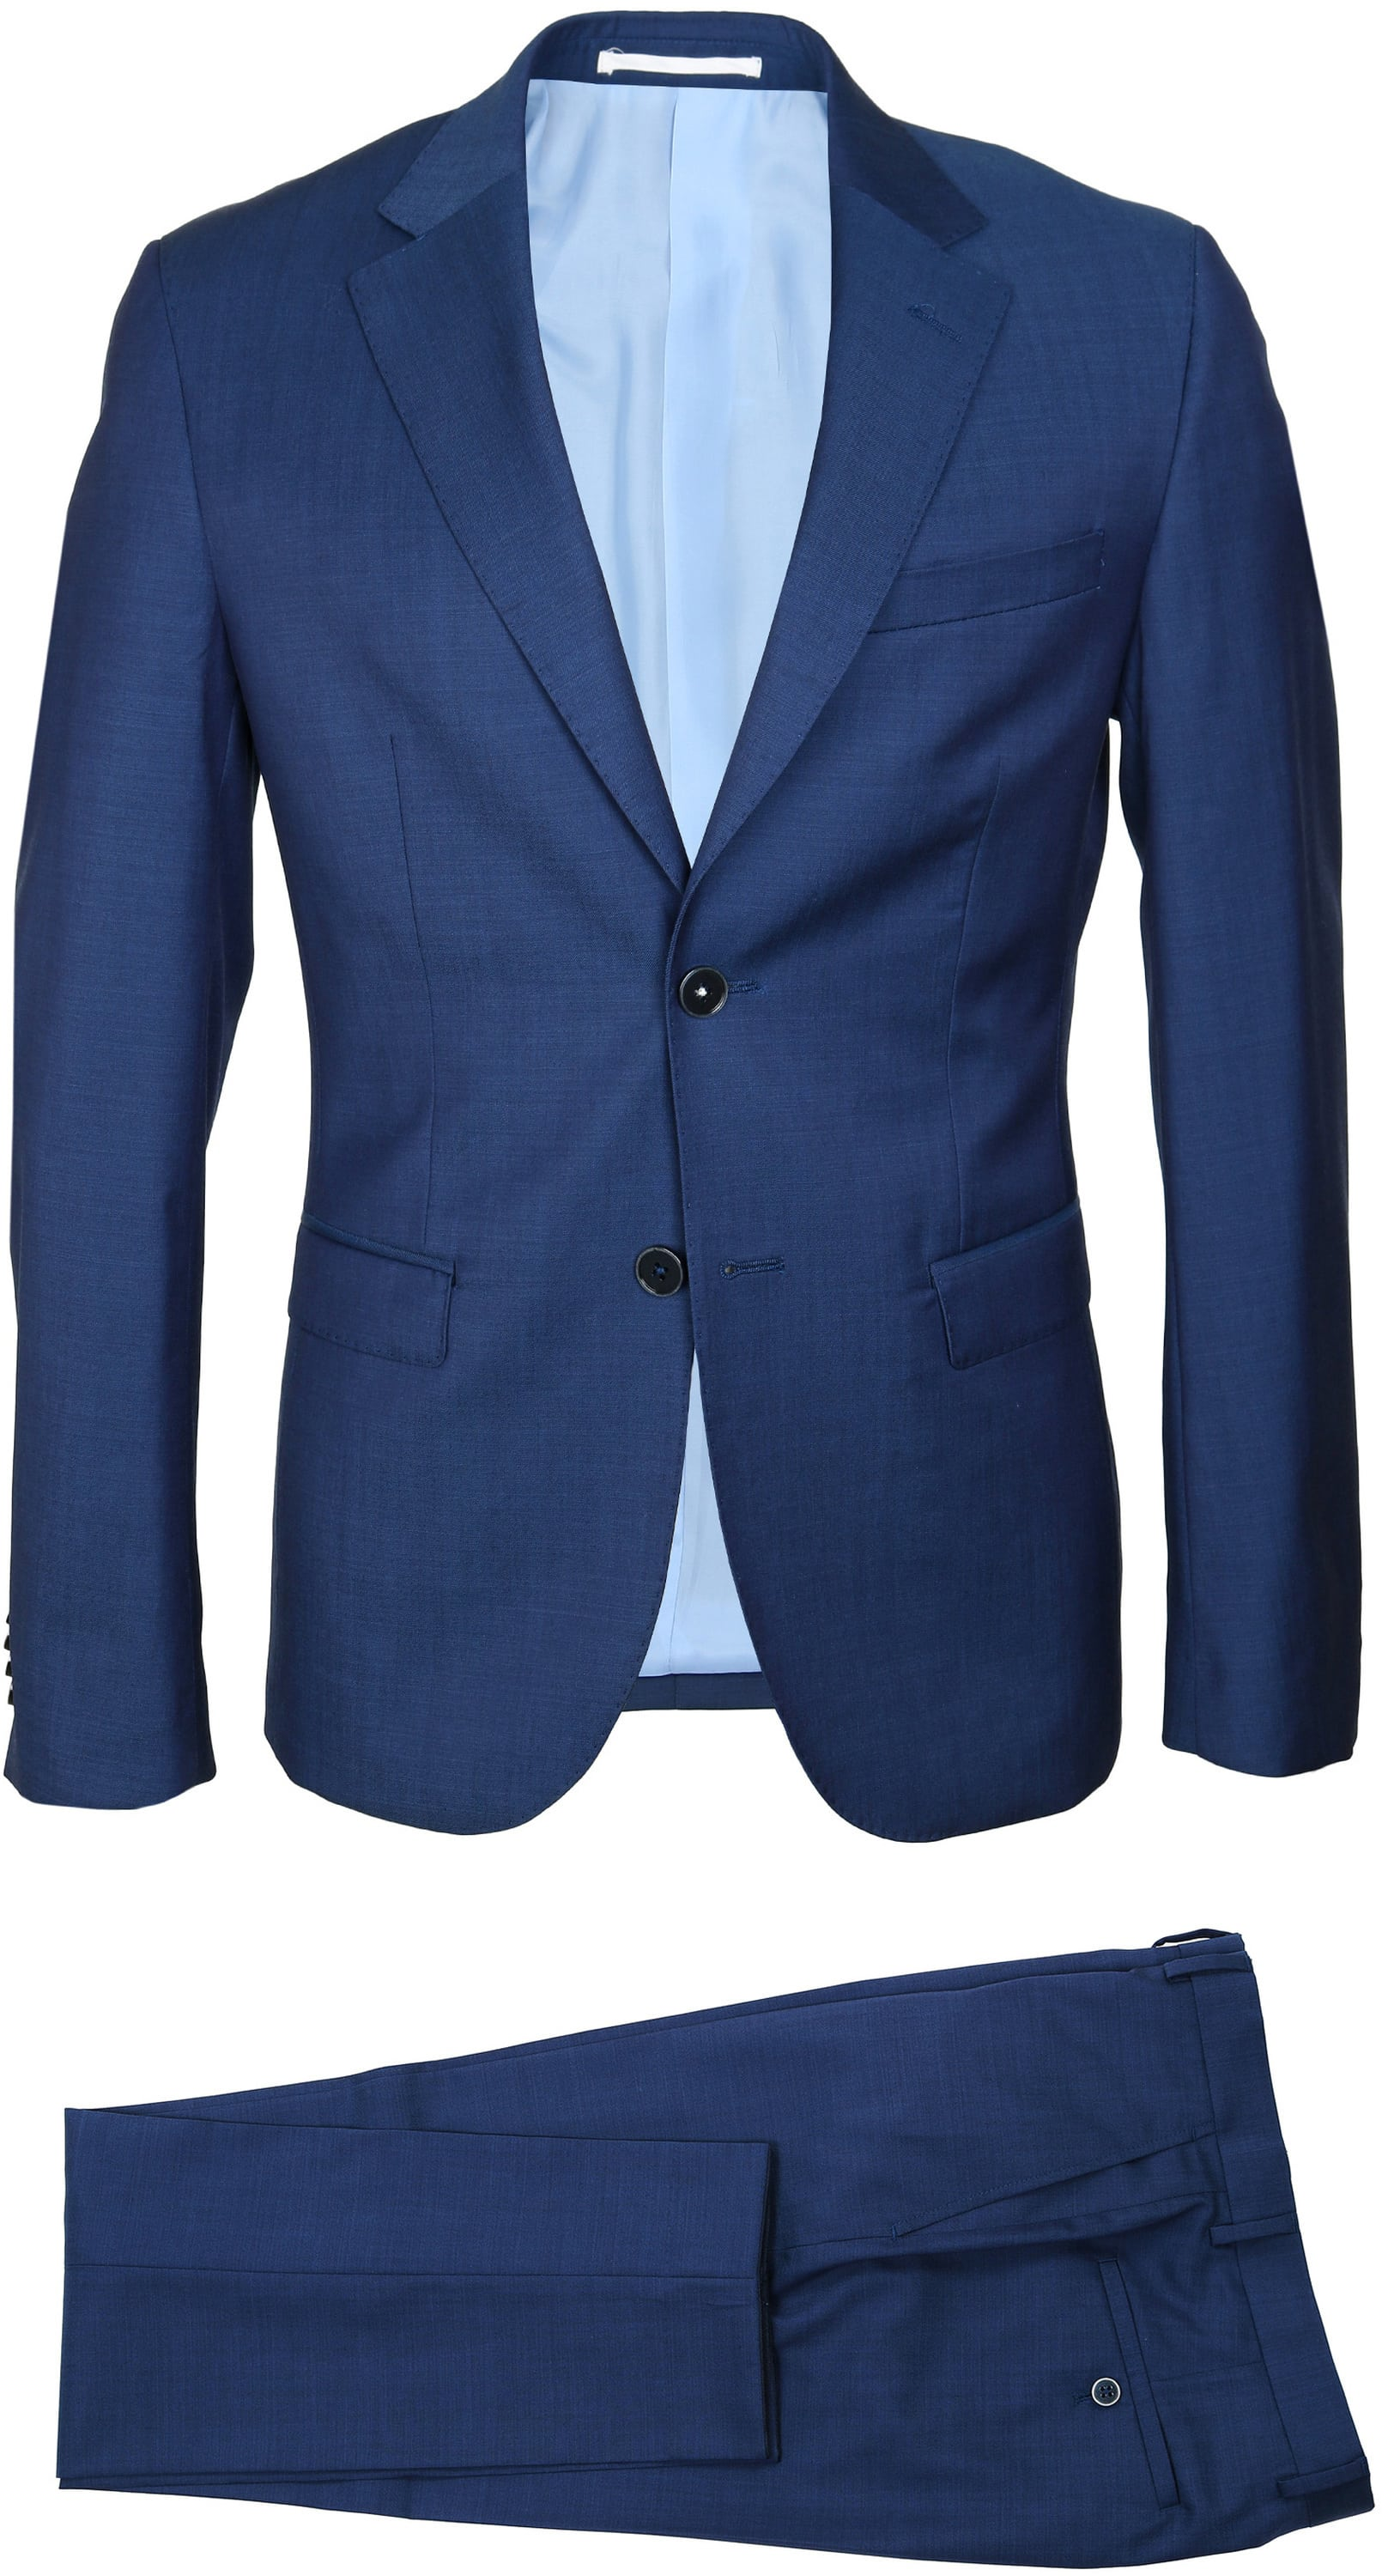 Suitable Suit Strato Light Navy foto 2